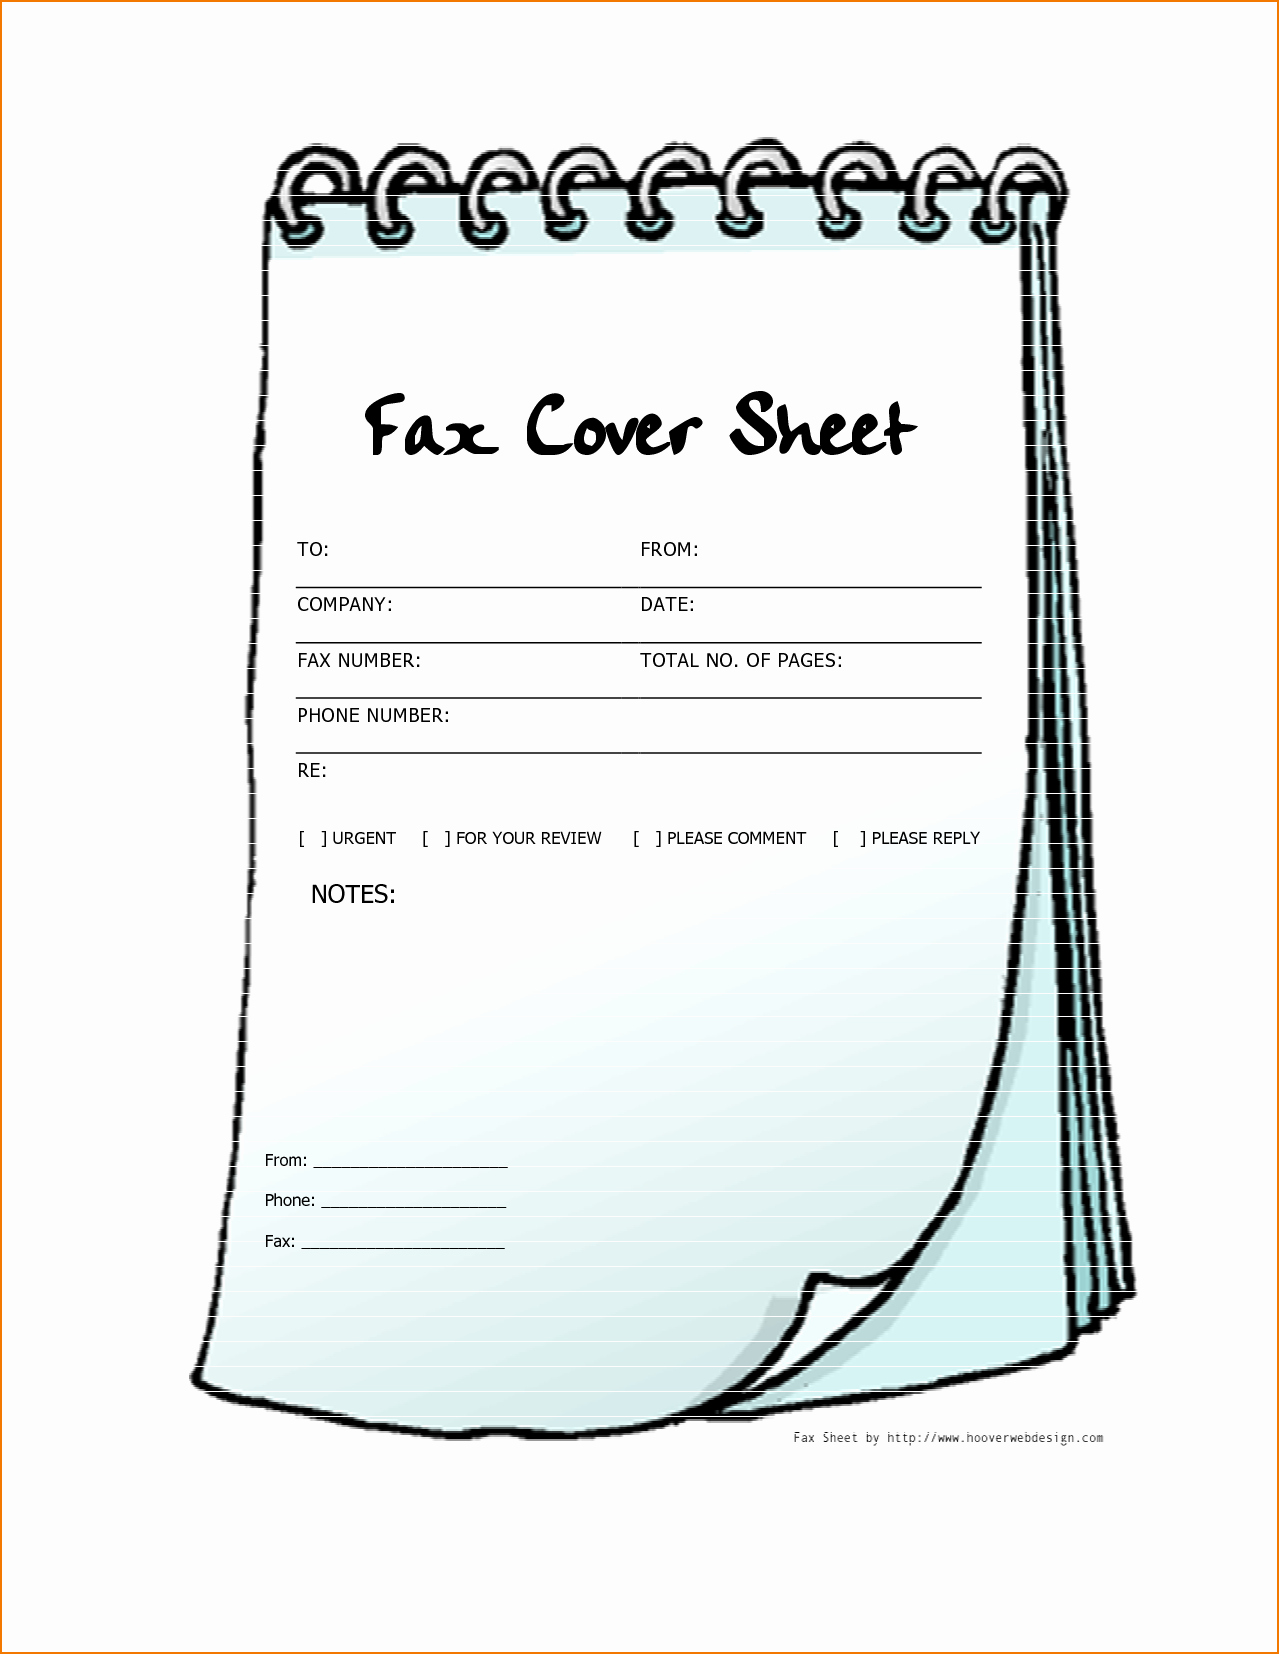 Fax Cover Sheet Printable Free Lovely 4 Template